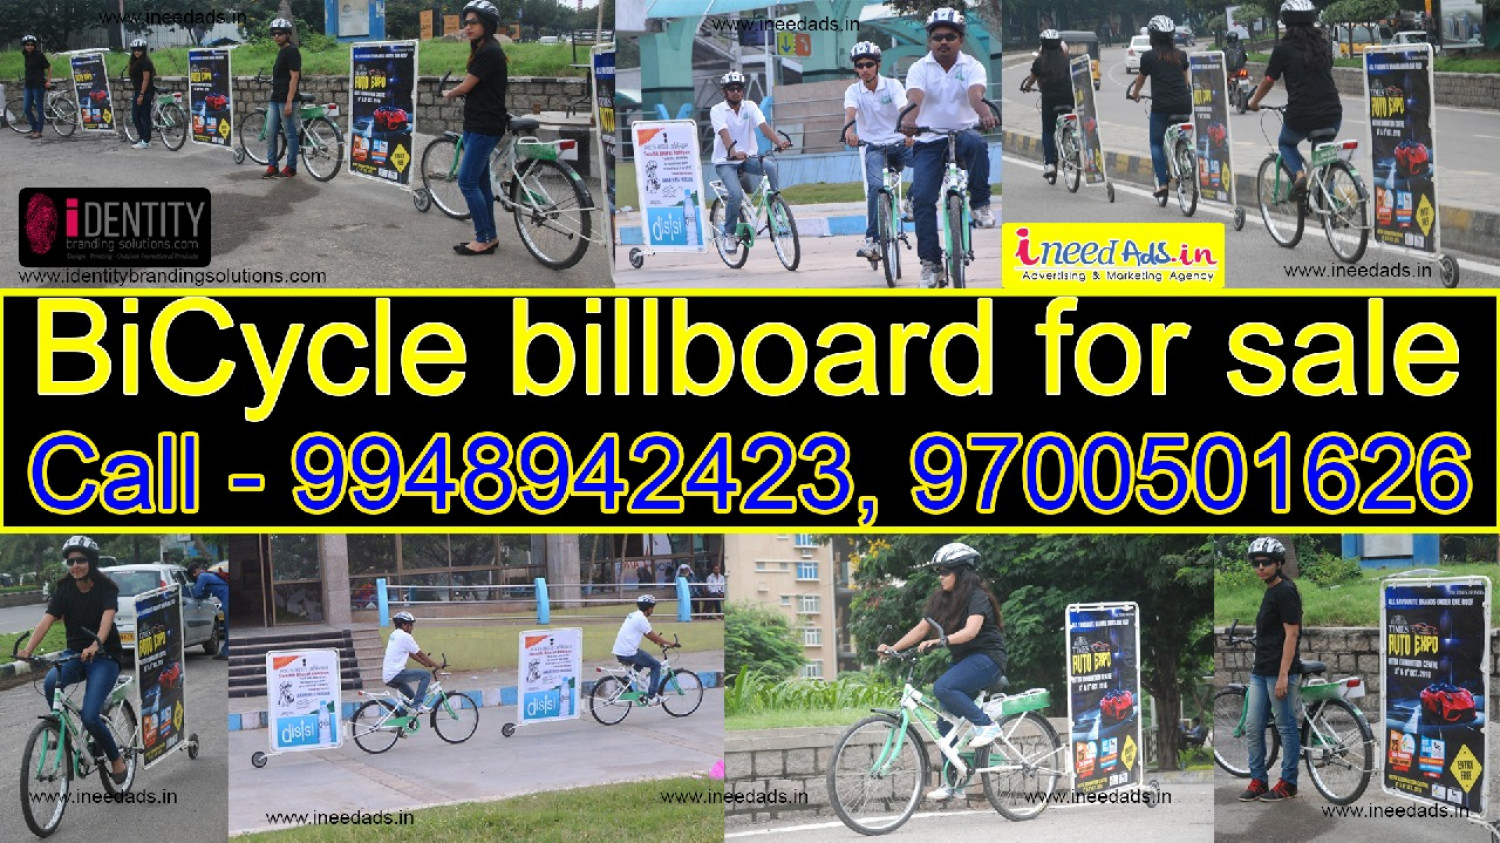 Bicycle billboard for sale, Cycle Ads| Outdoor ads Advertising| in Hyderabad. CALL 9948942423 Infographic